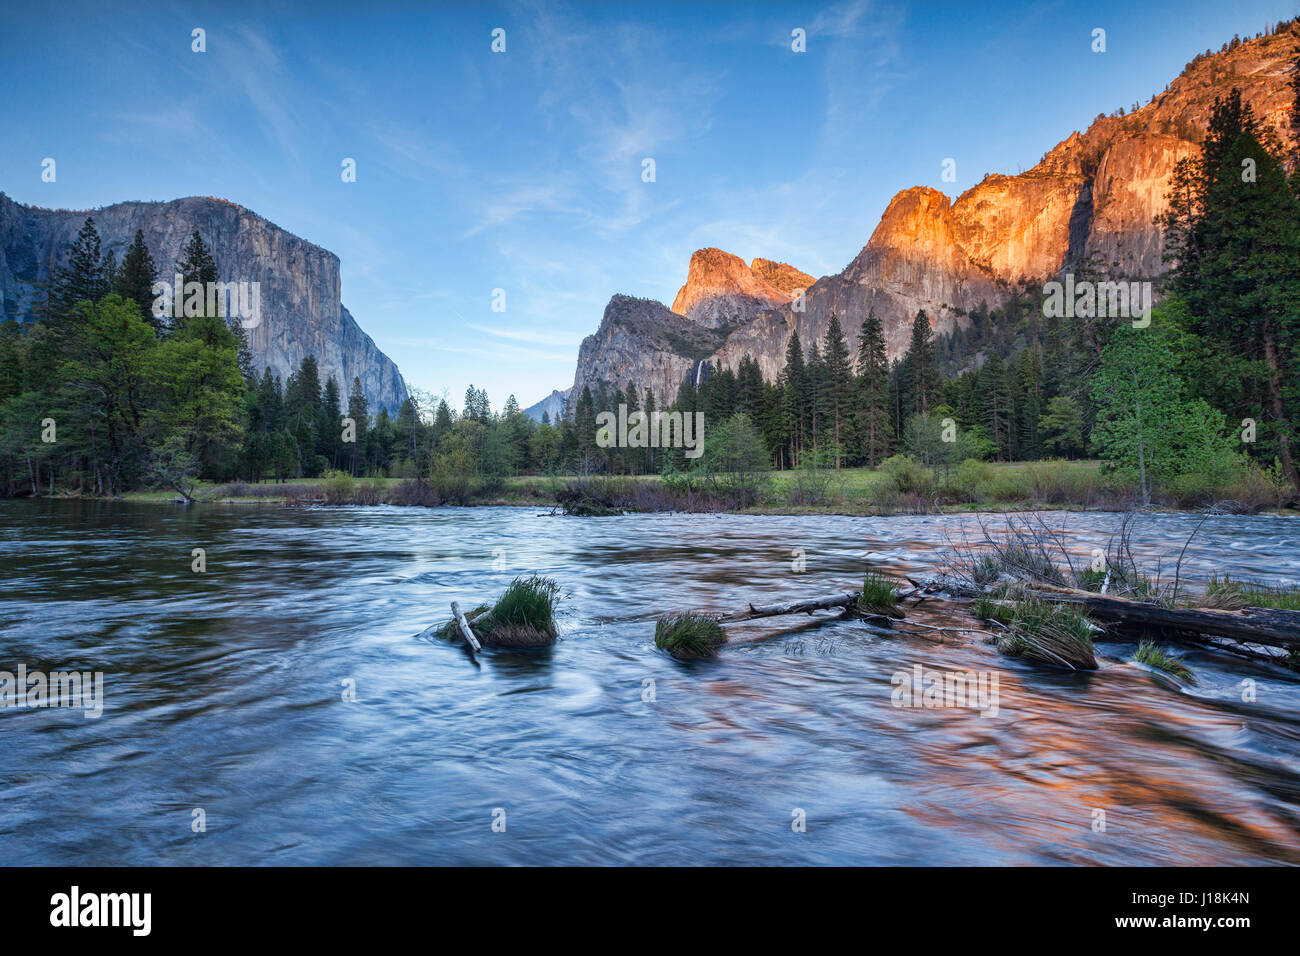 A quiet evening as the sun goes down in Yosemite National Park, Calfornia, USA. - Stock Image